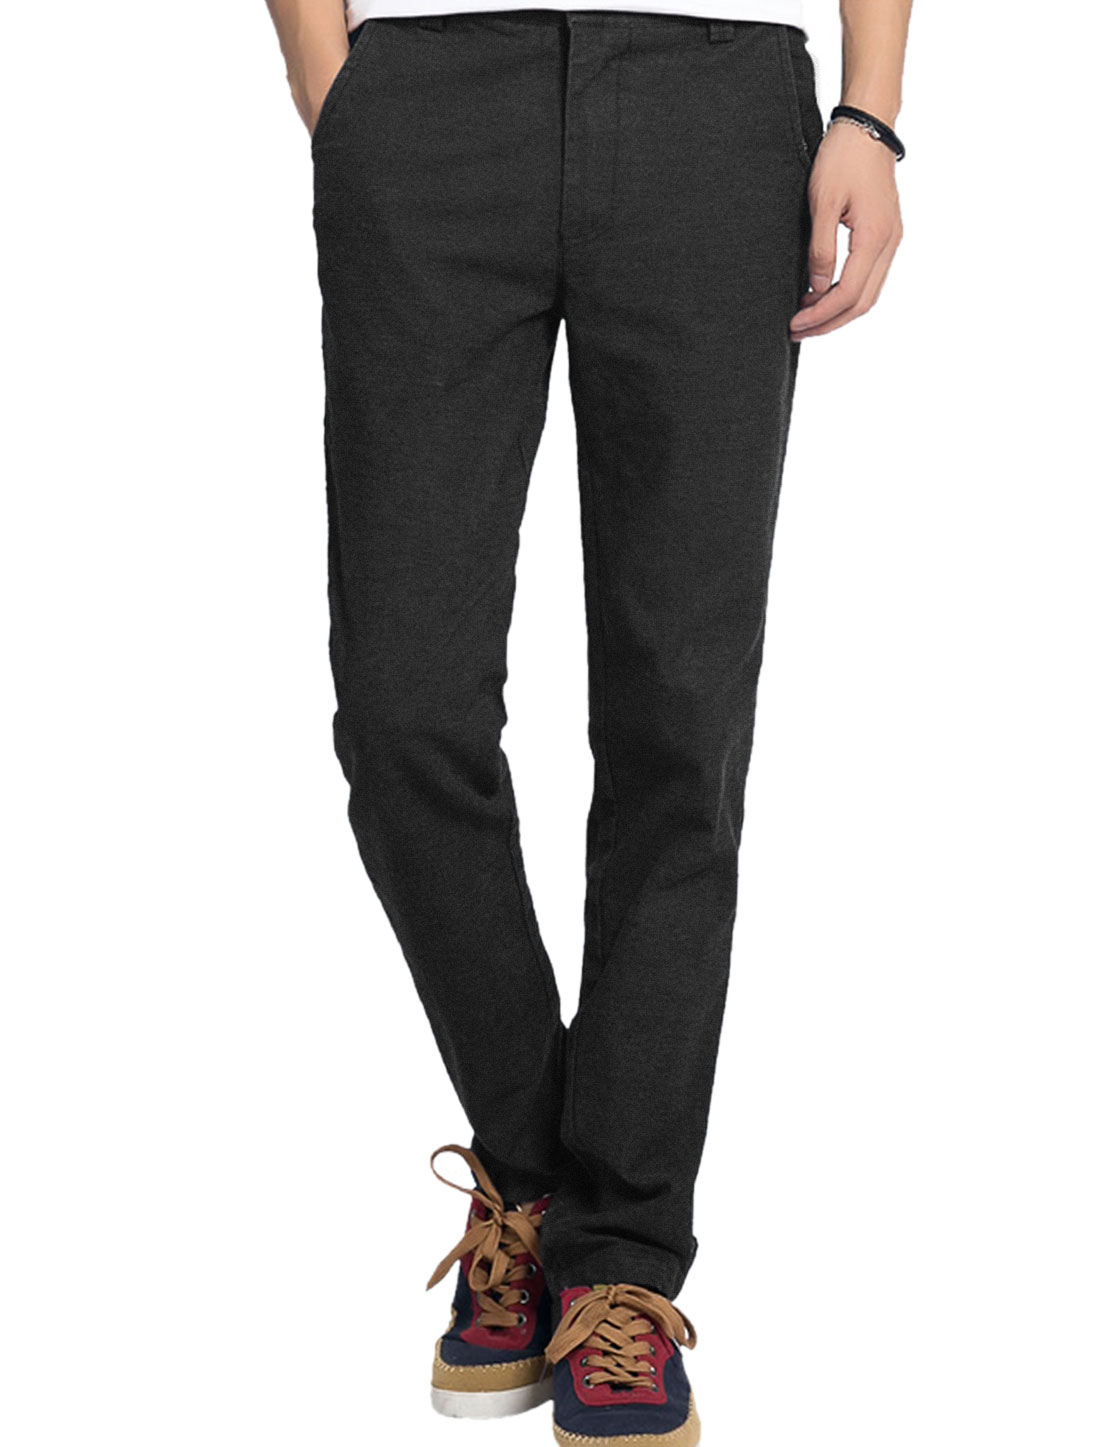 Men Buttoned Front Zipper Fly Fitting Casual Trousers Black W38